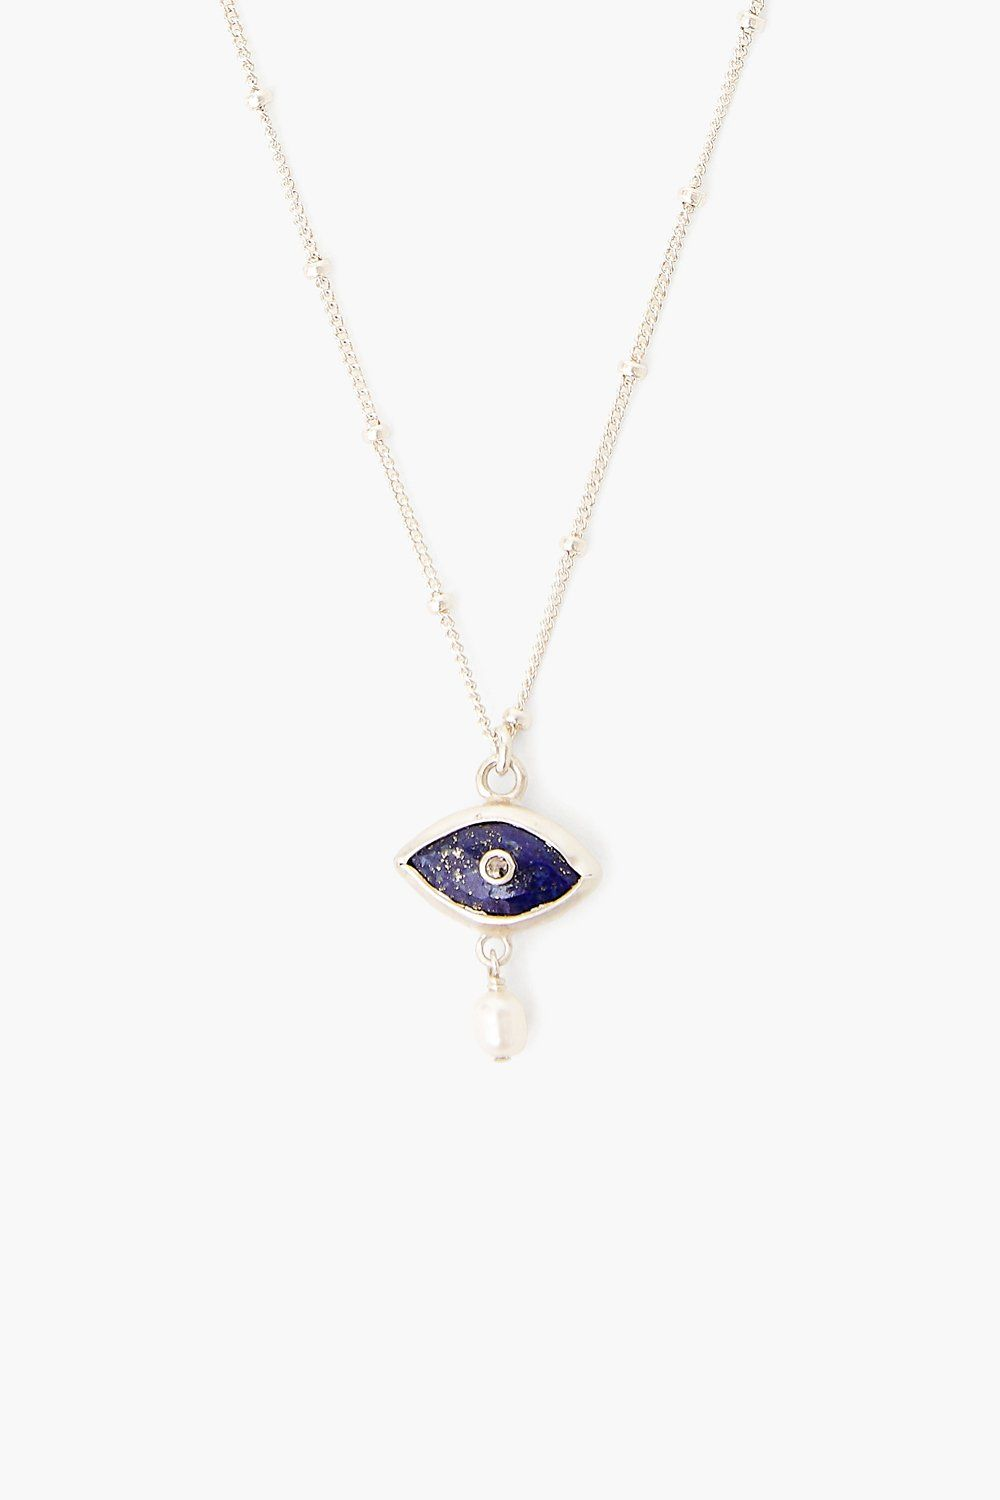 Pearl and Lapis Evil Eye with Diamond Necklace